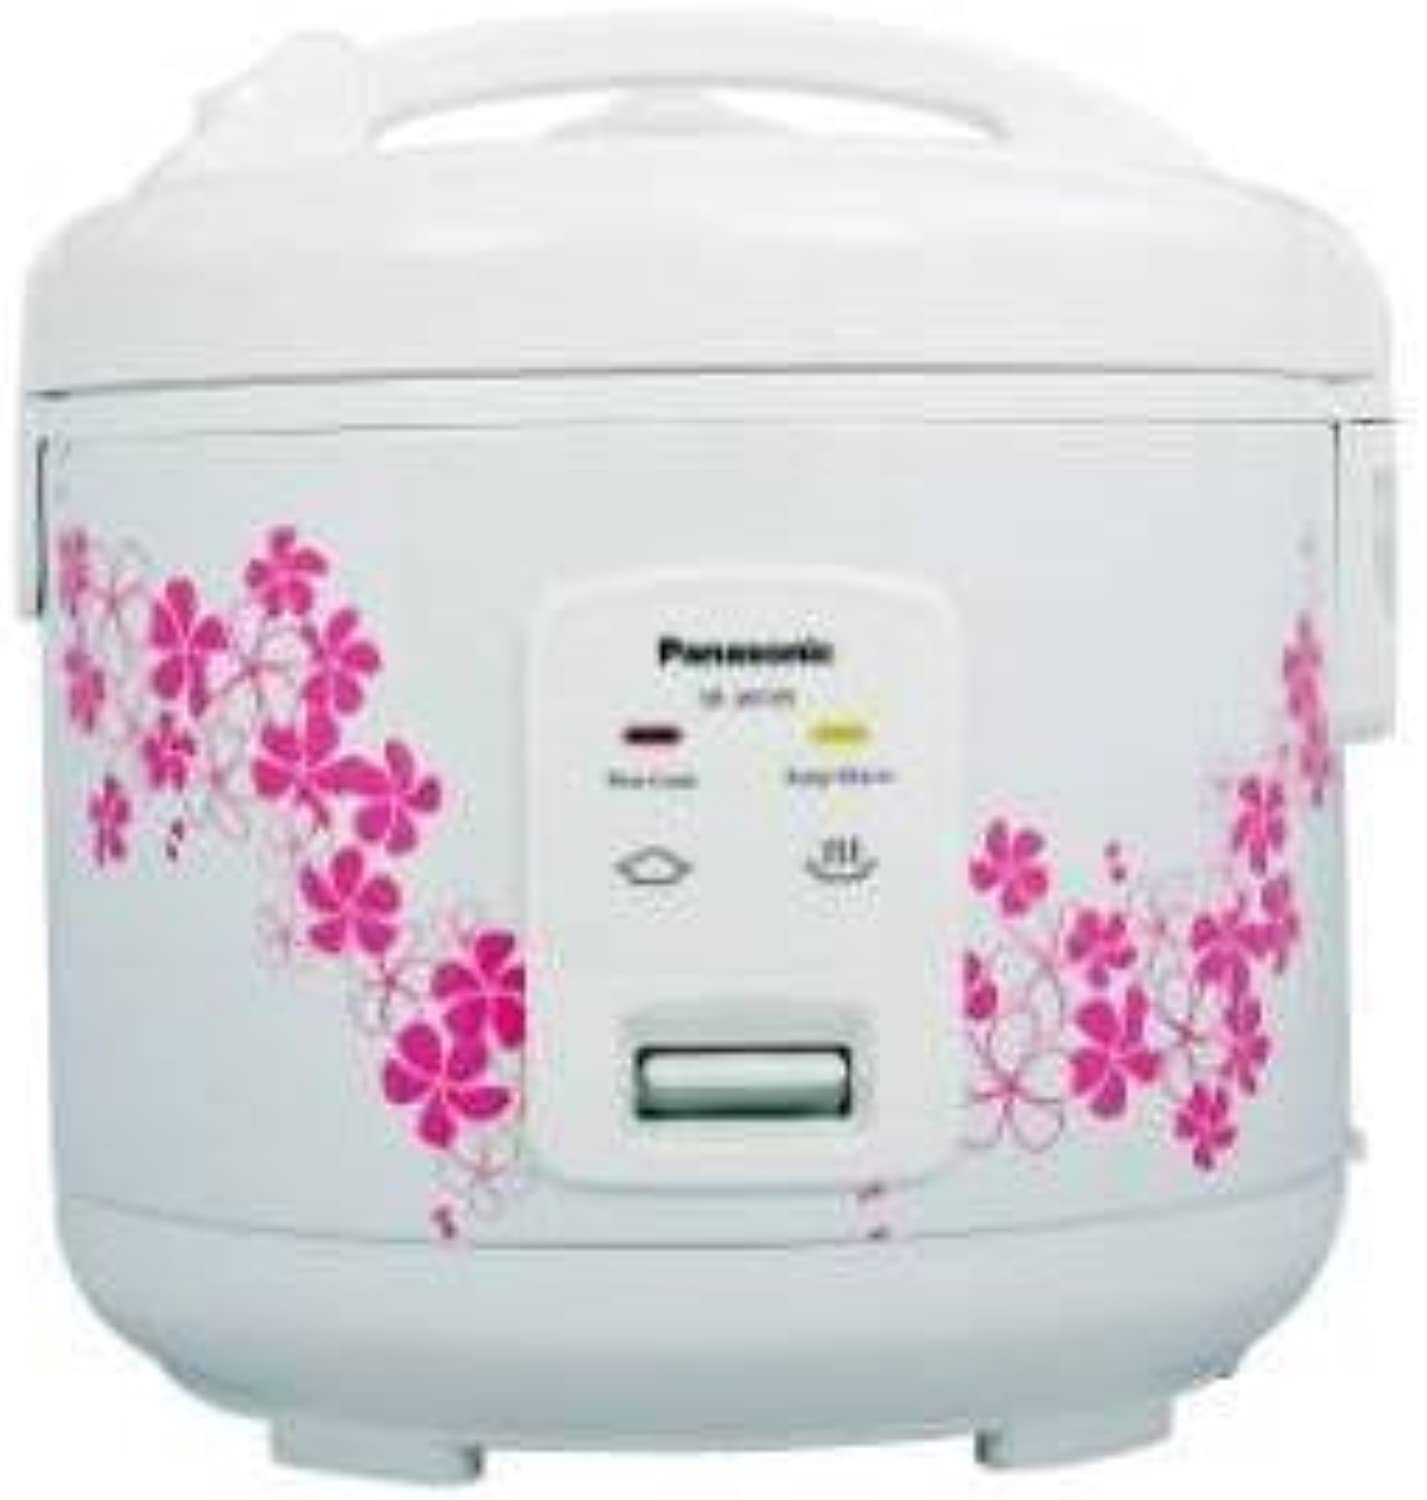 Panasonic SR-JN105 Electric Rice Cooker (5 Cup Uncooked Rice Capacity)